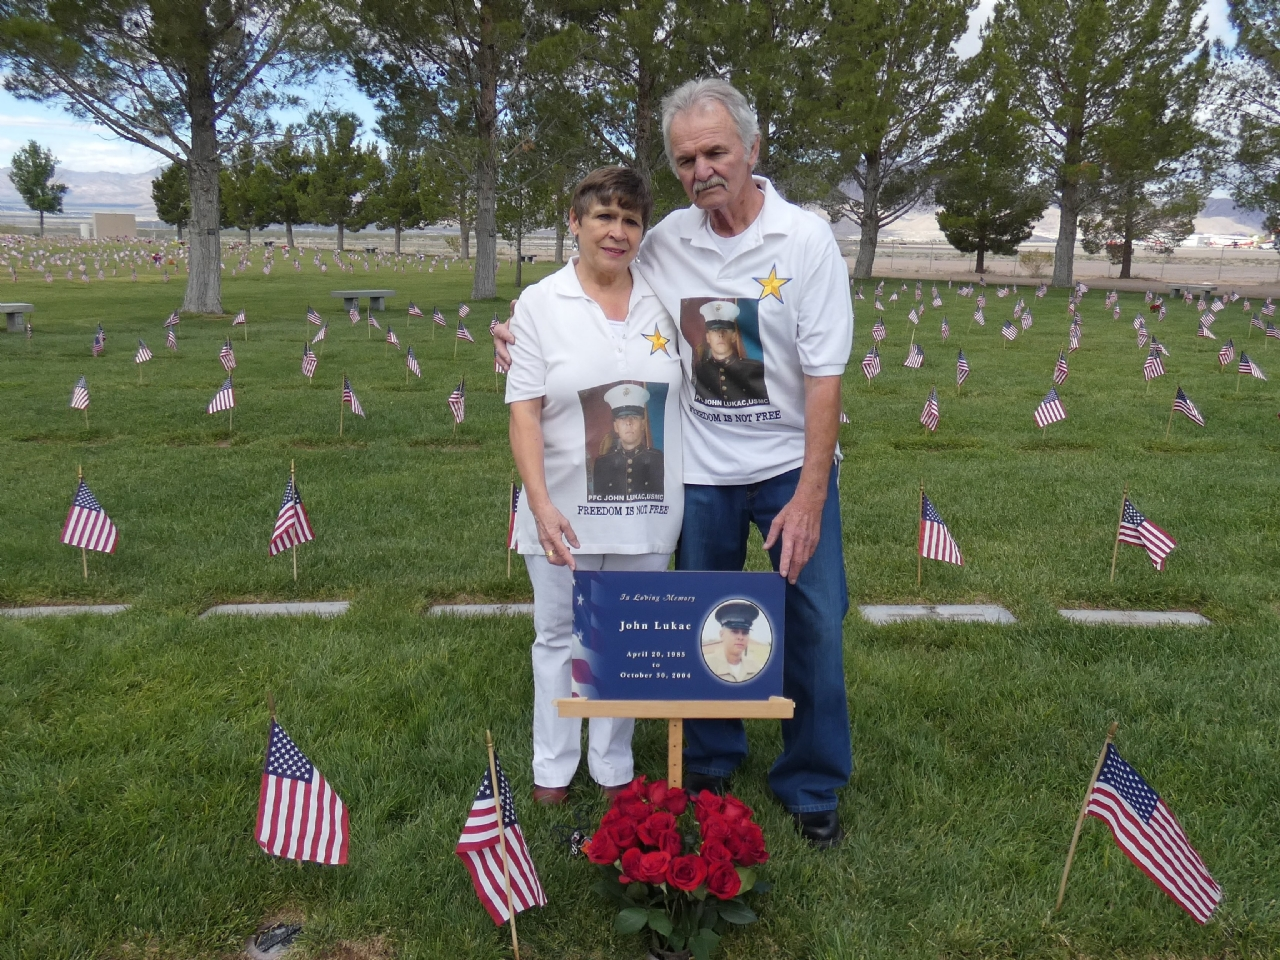 Memorial Day Event honoring Post 12093 namesake USMC PFC John Lukac. Shown is his parents Jon and Helena Lukac.